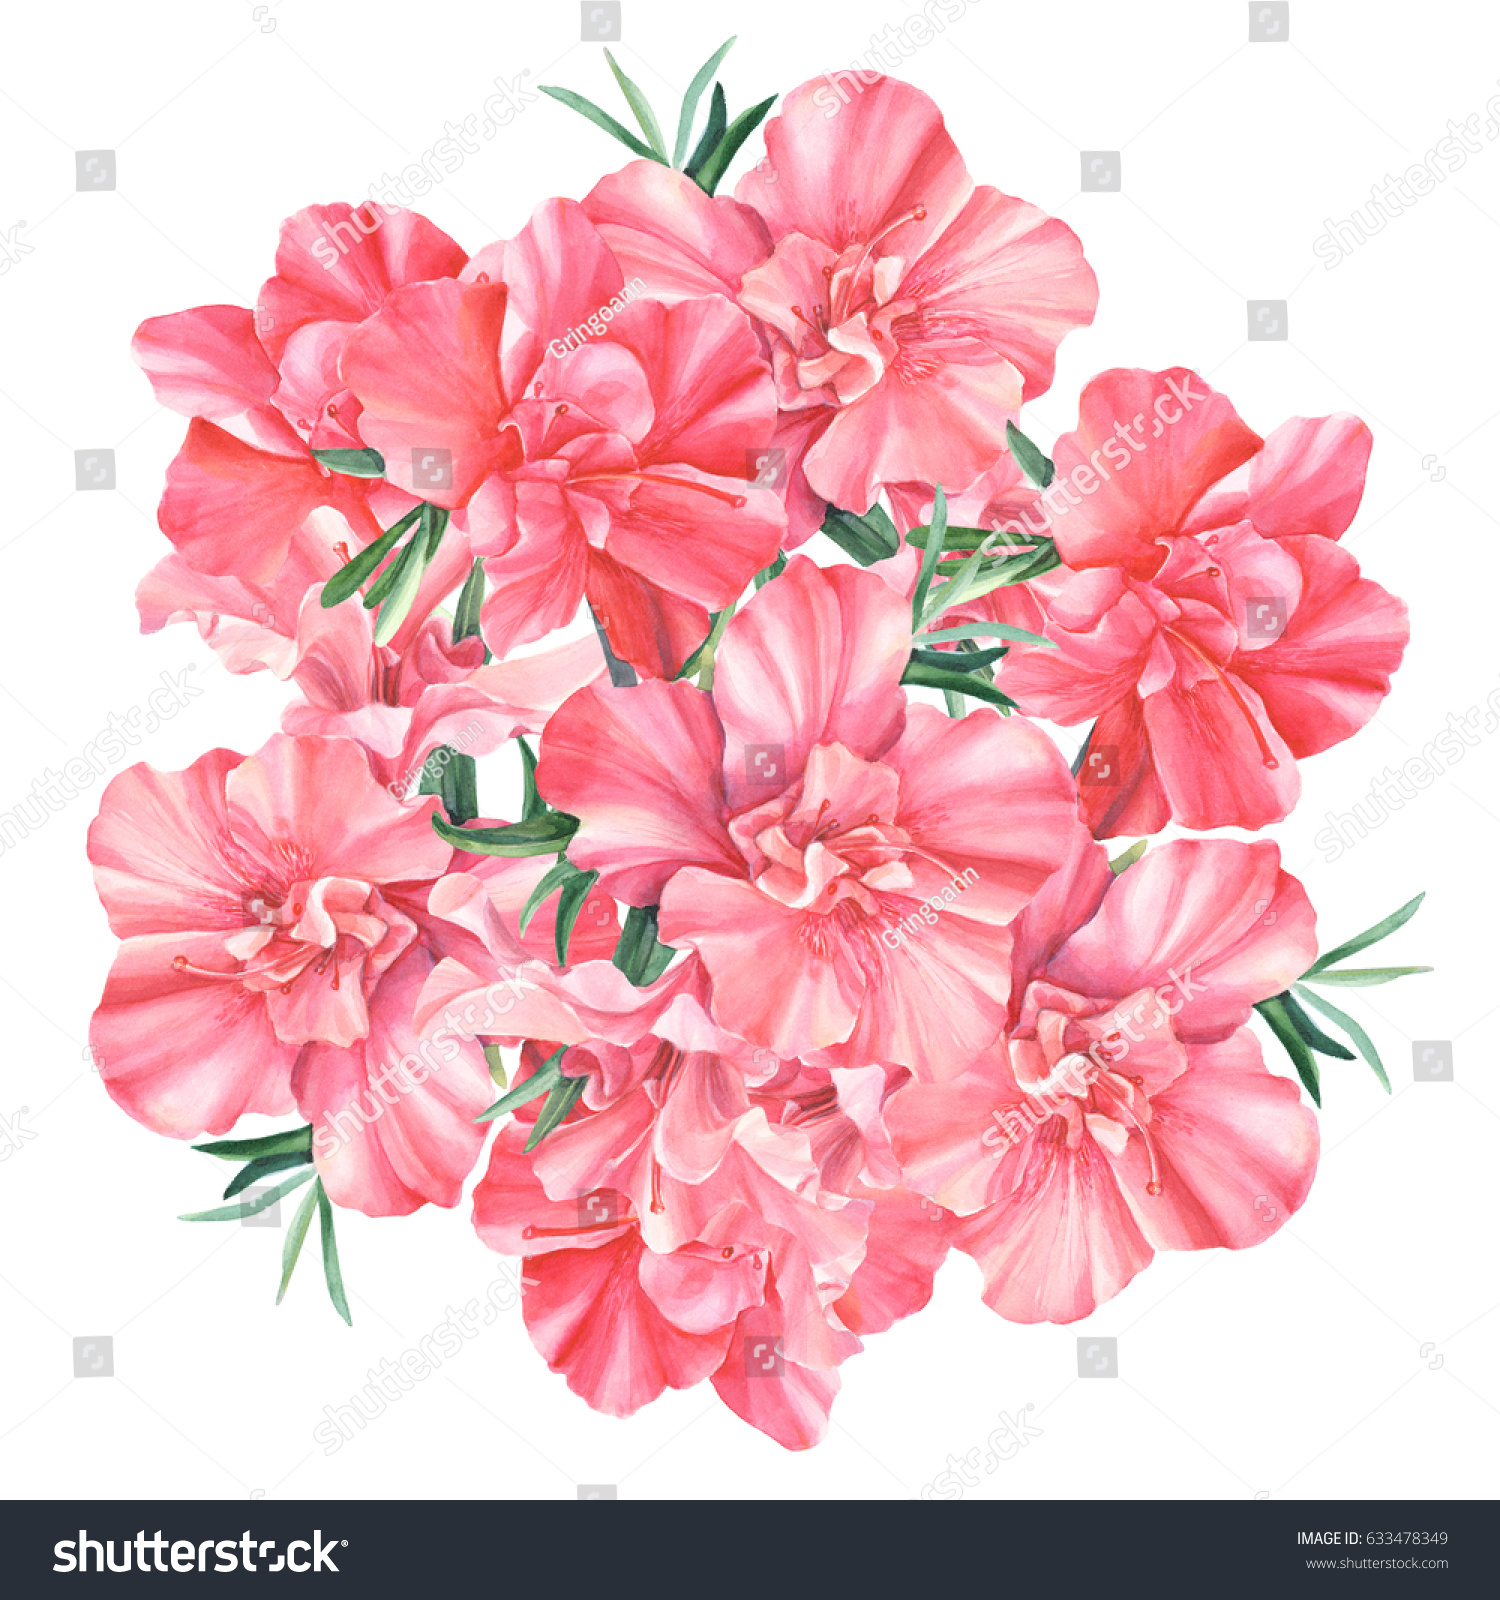 Rhododendron Beautiful Flowers Bouquet Hand Drawing Stock ...